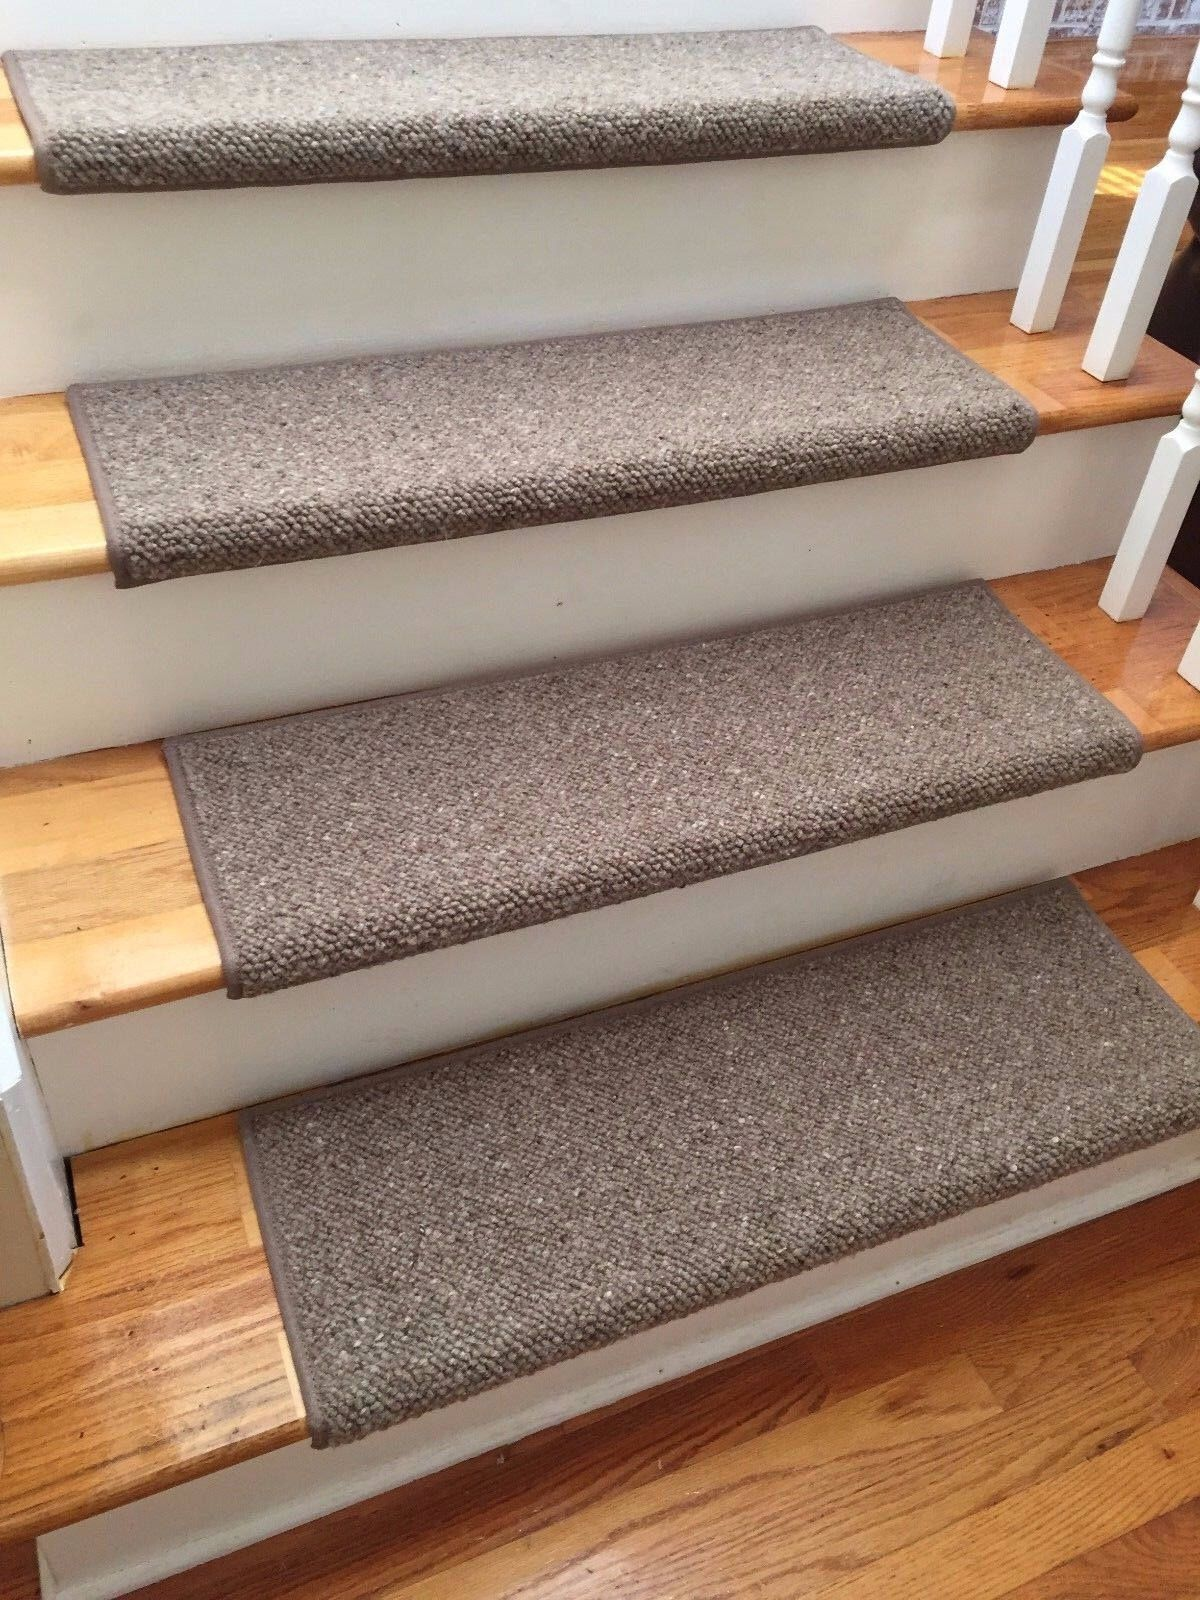 26 Remarkably Introducing Carpet Stairs Edge In 2020 Carpet Stair Treads Handmade Step Carpet Stairs